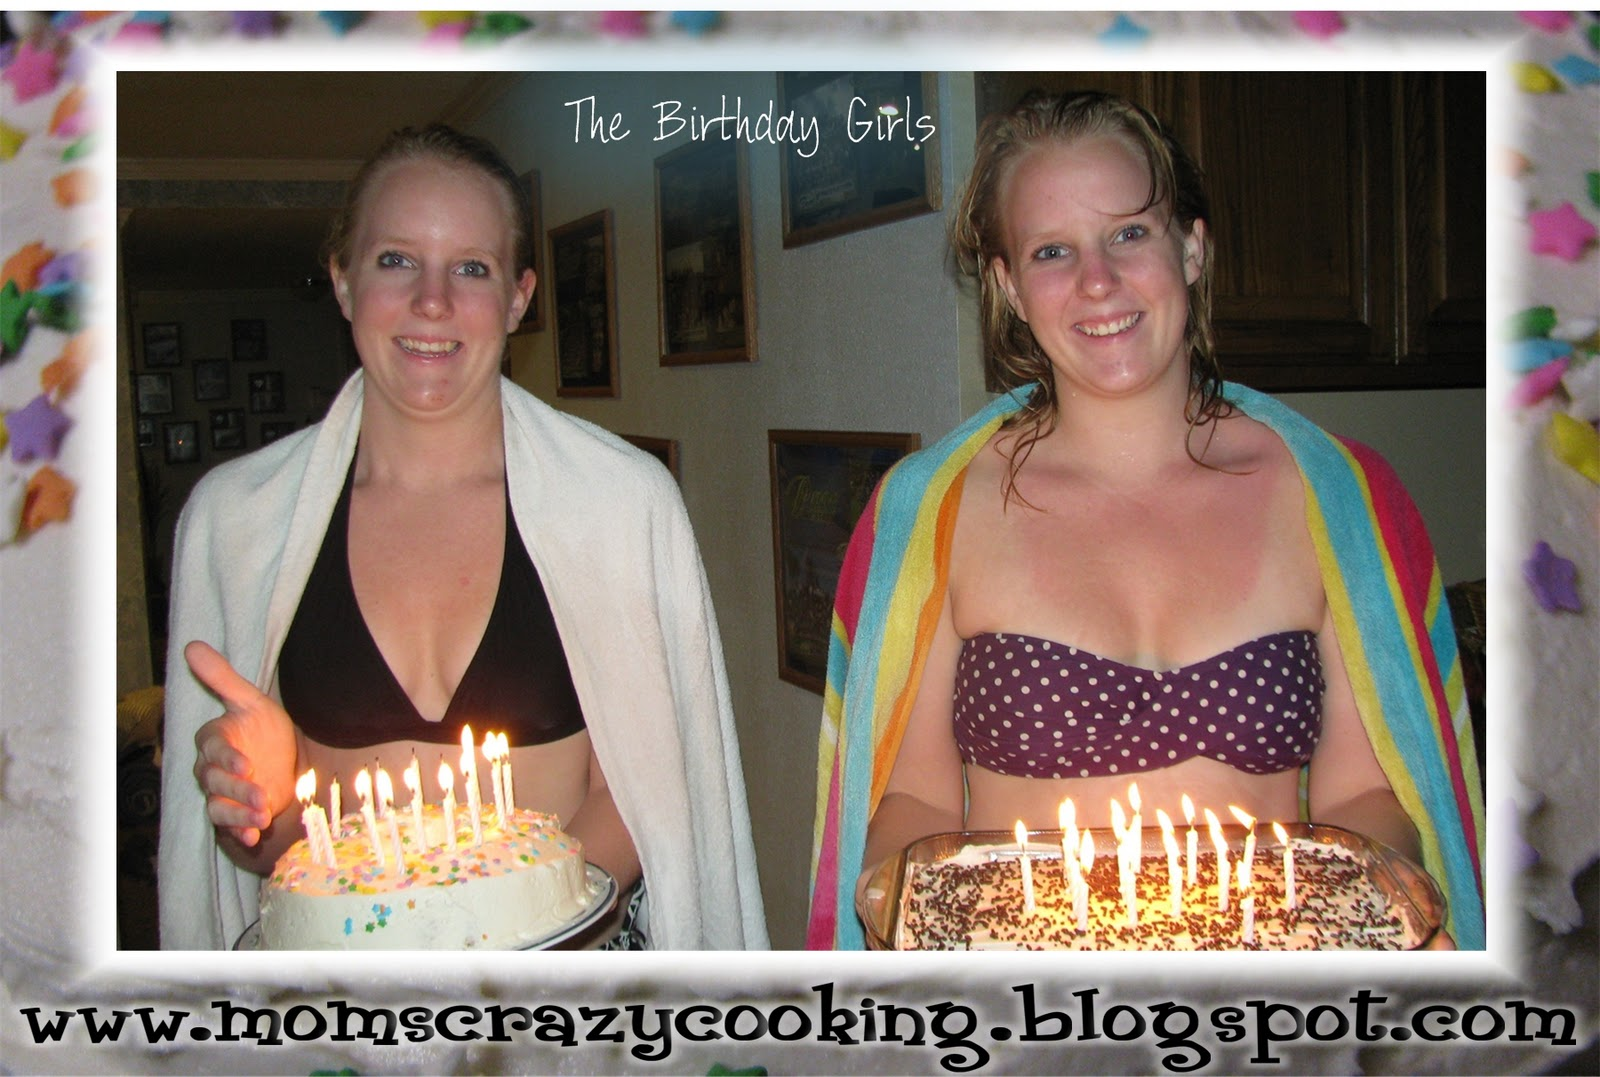 MOMS CRAZY COOKING: Twins Birthday Party = TWO Cakes